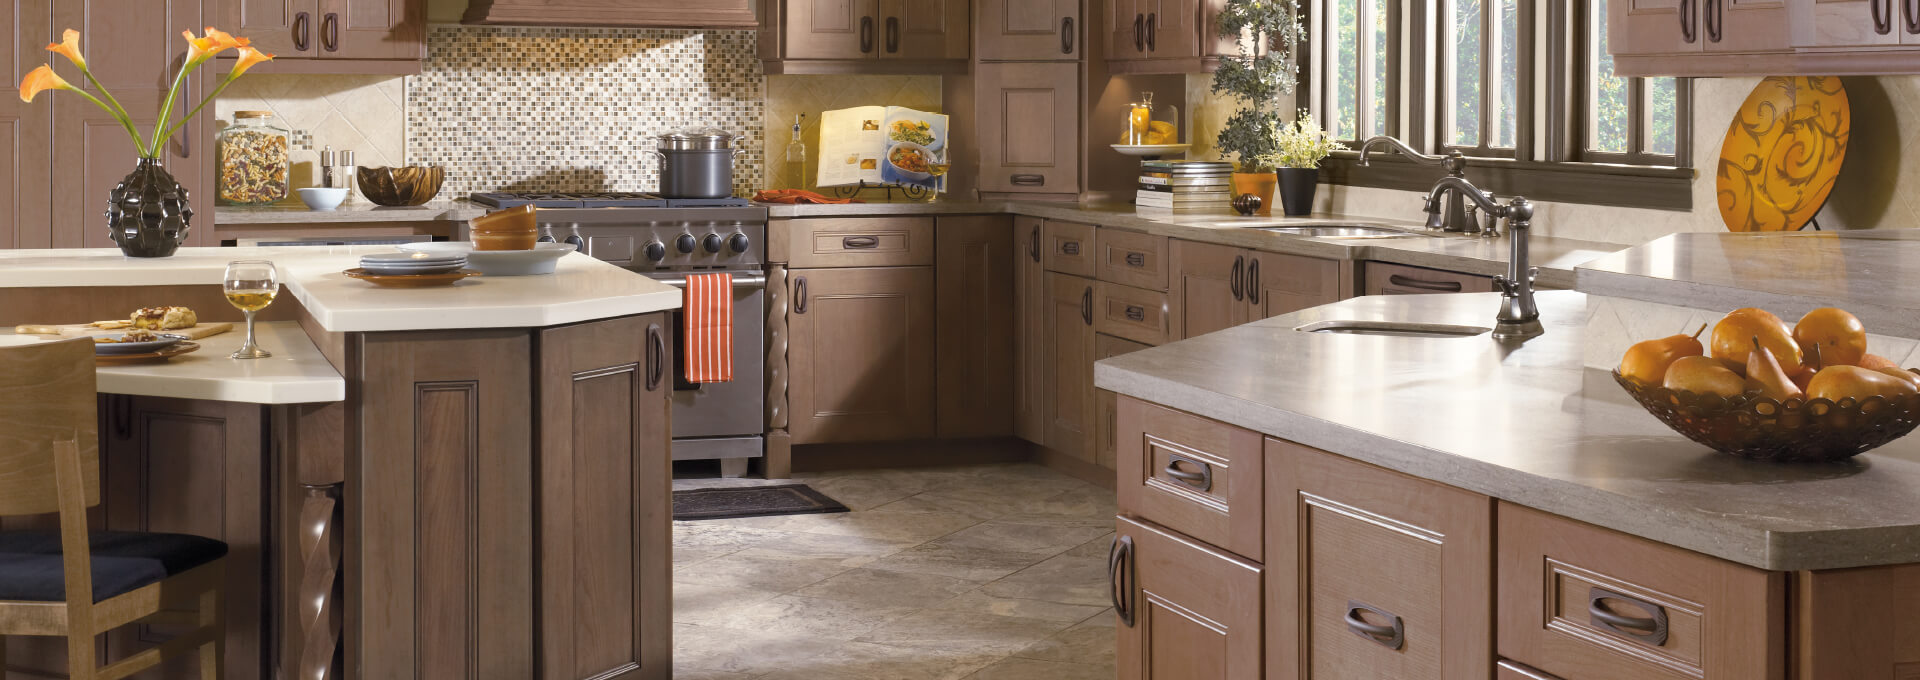 kitchen express | cabinets, countertops & showroom in syracuse, ny